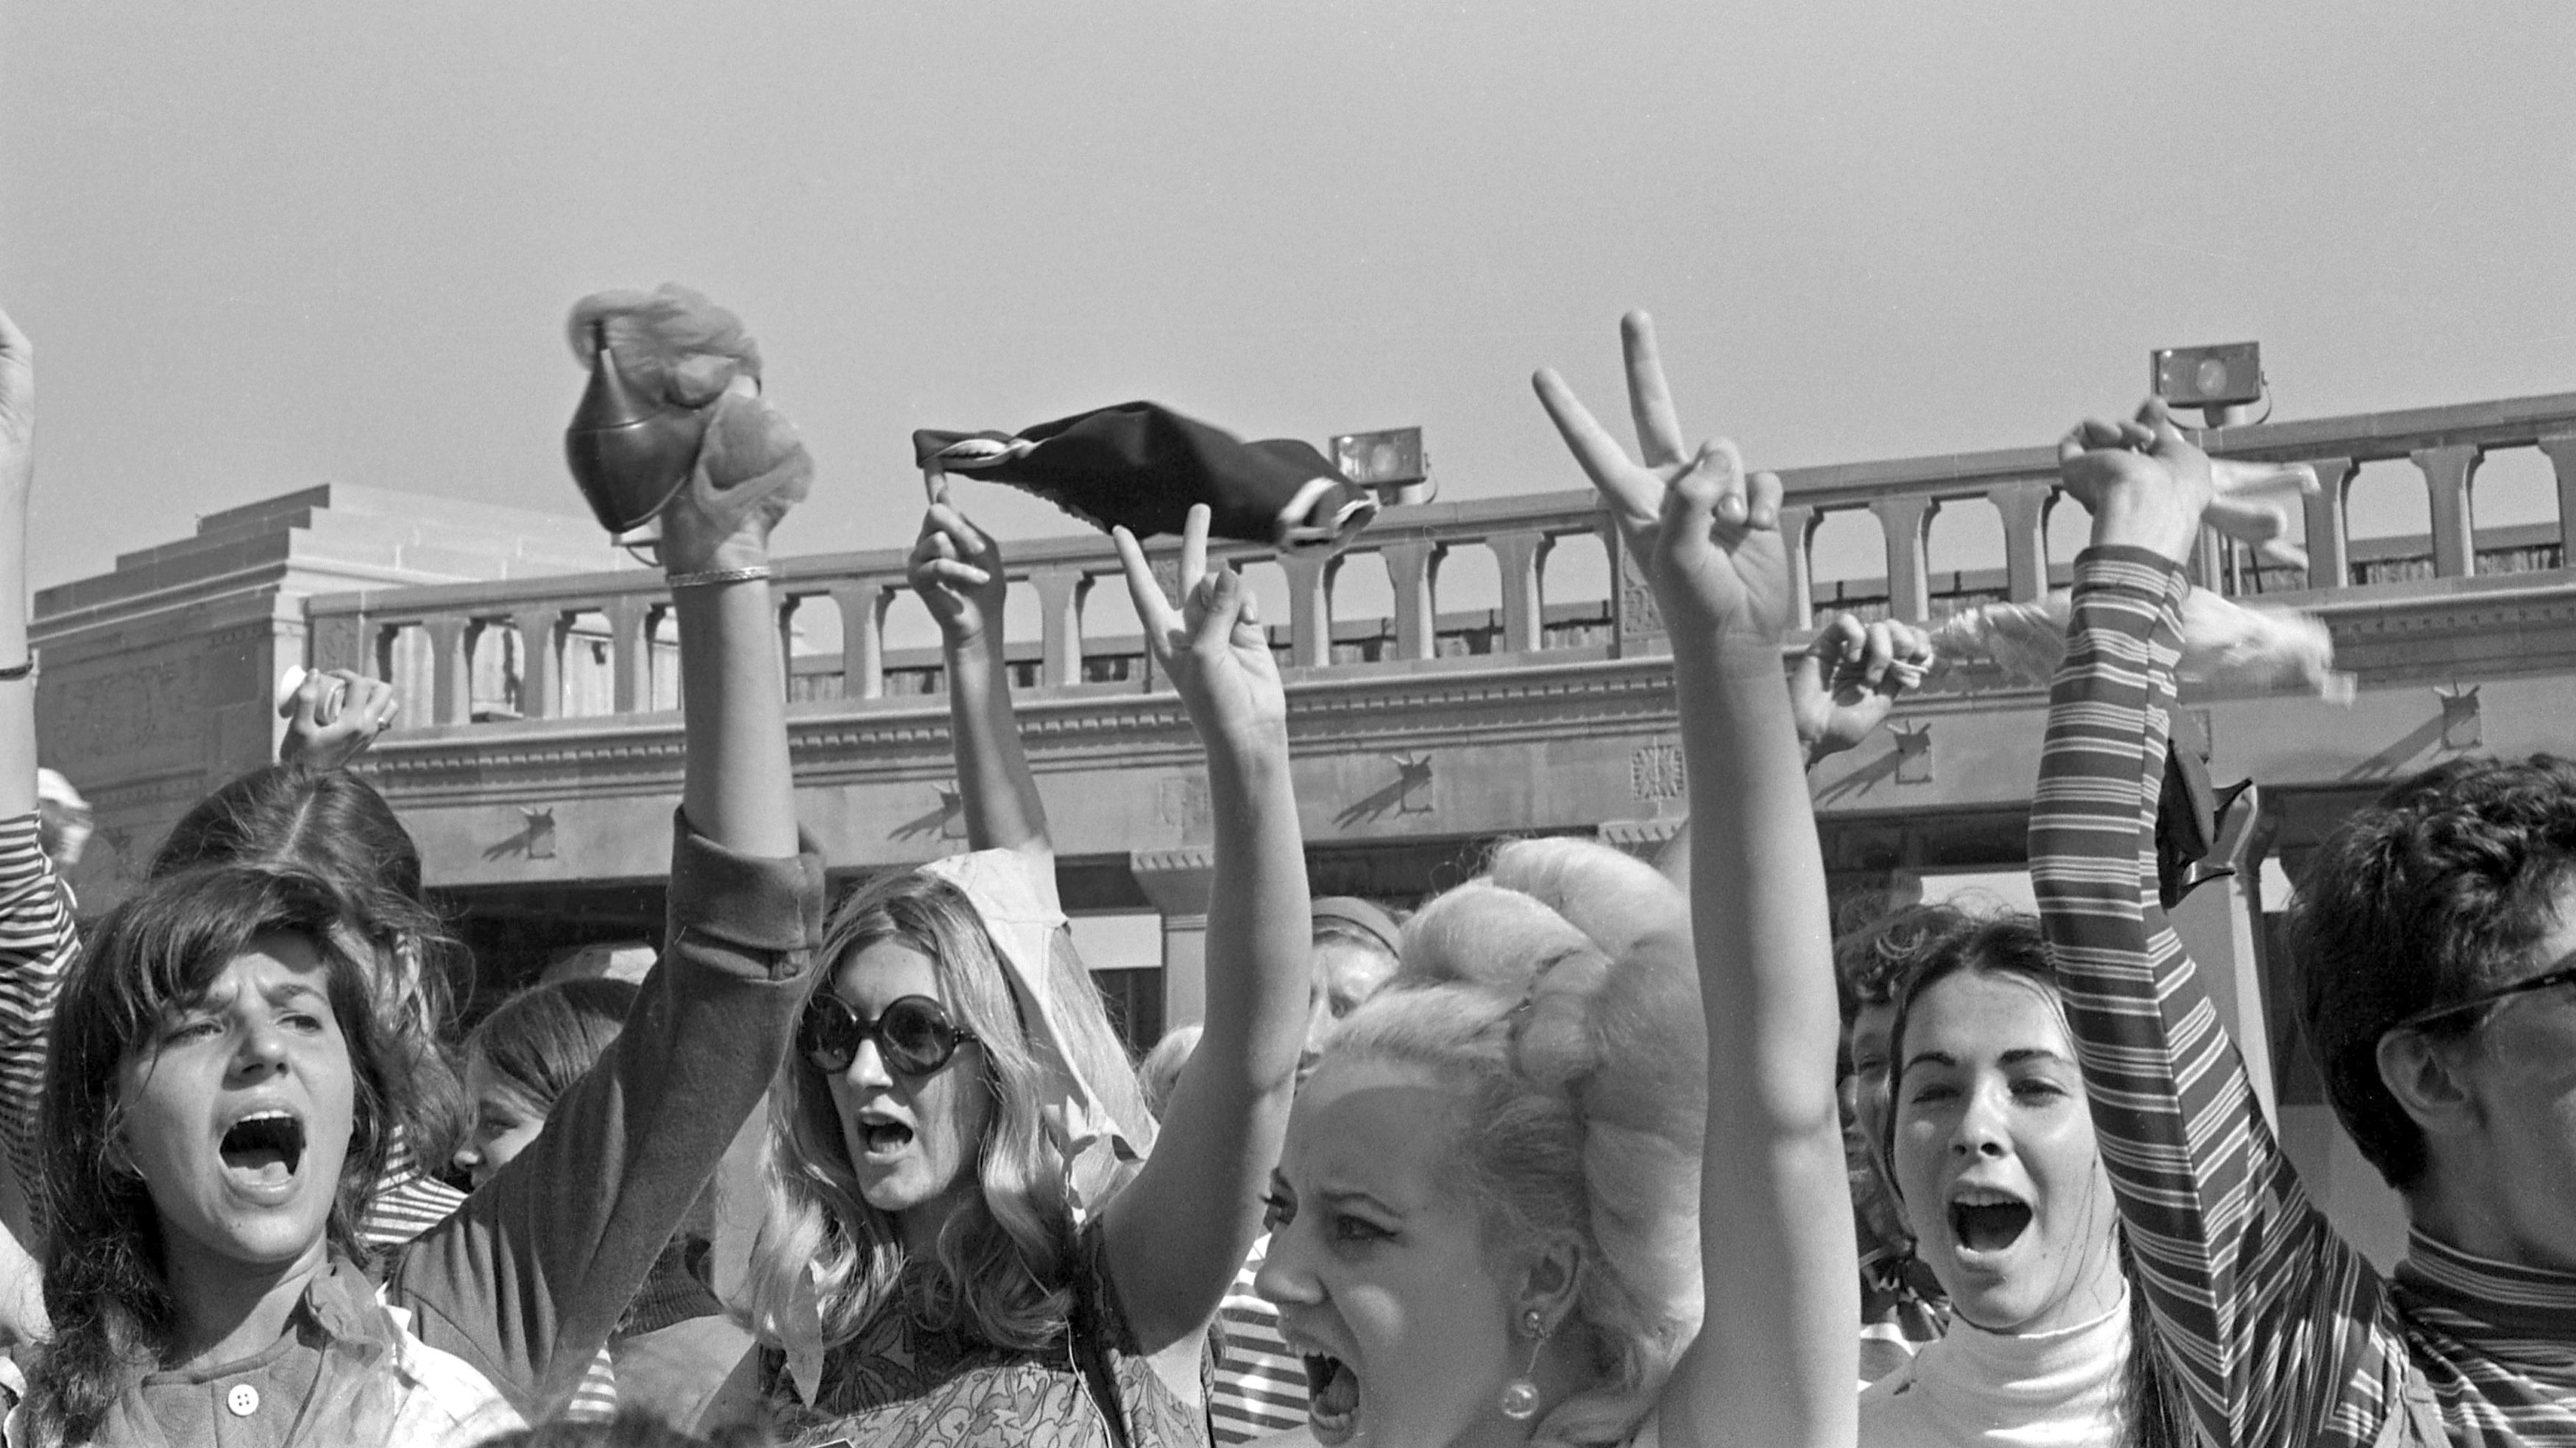 I Was There: The 1968 Miss America Pageant Protest